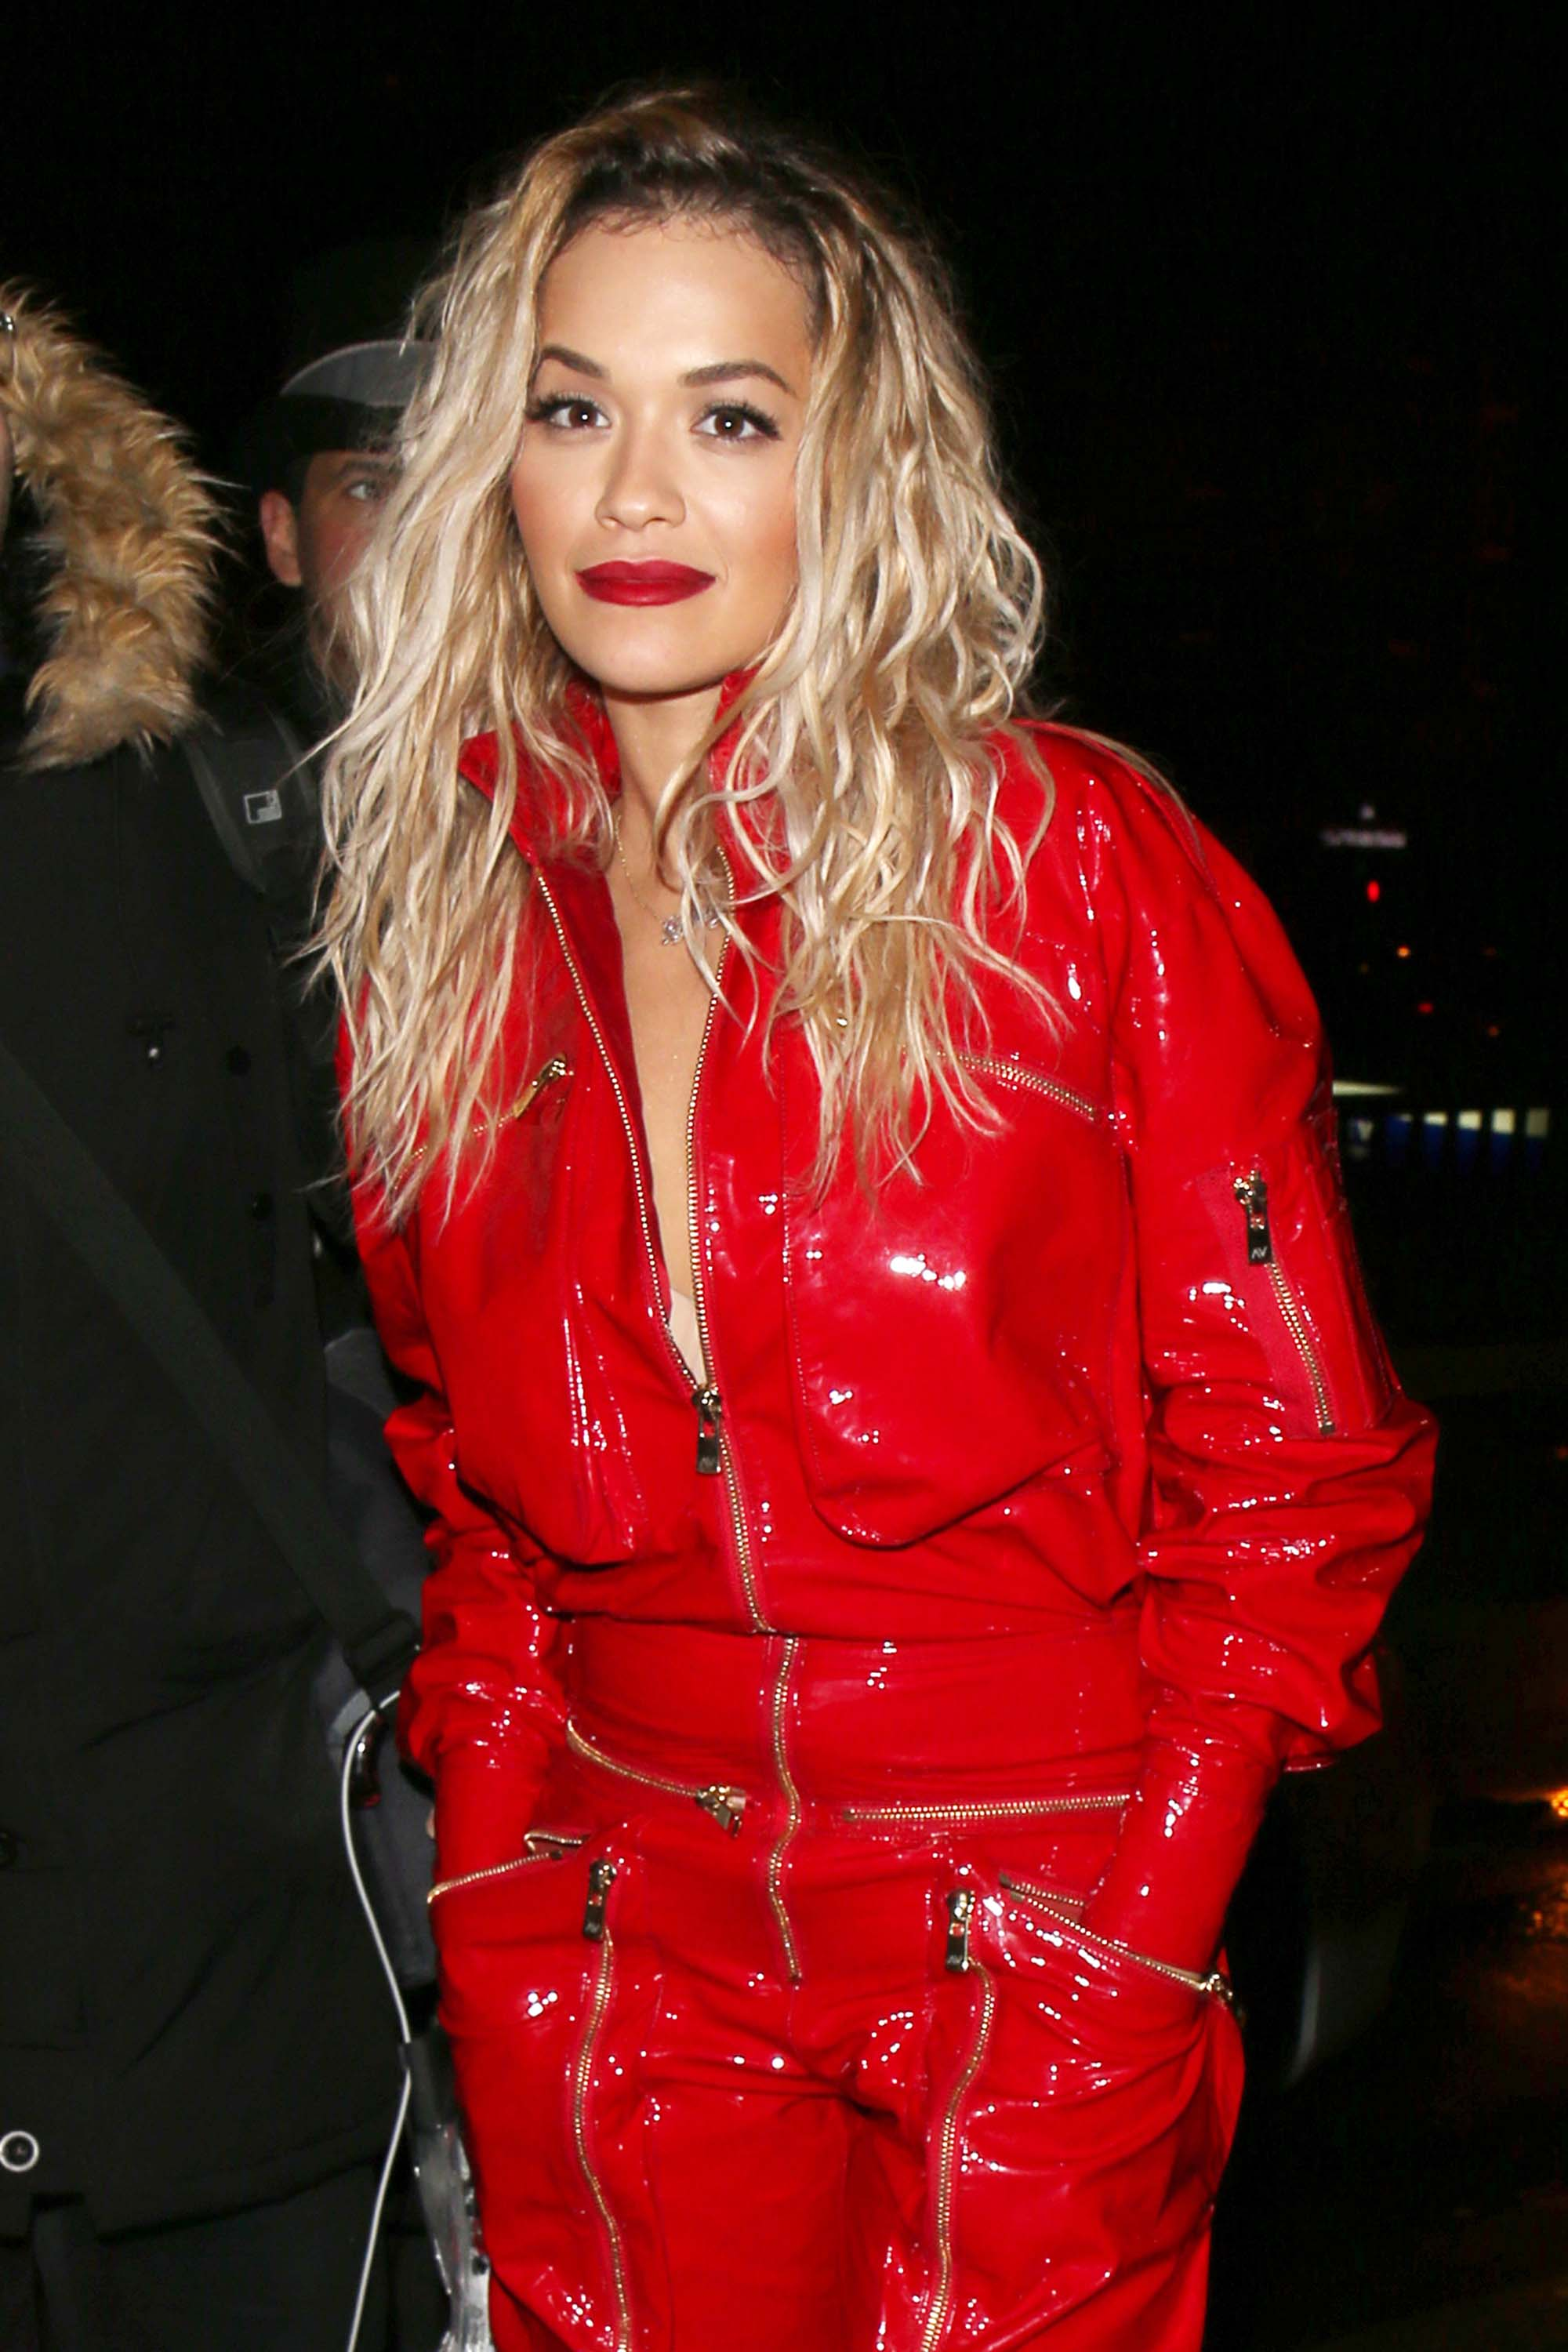 Rita Ora leaving an event in Paris